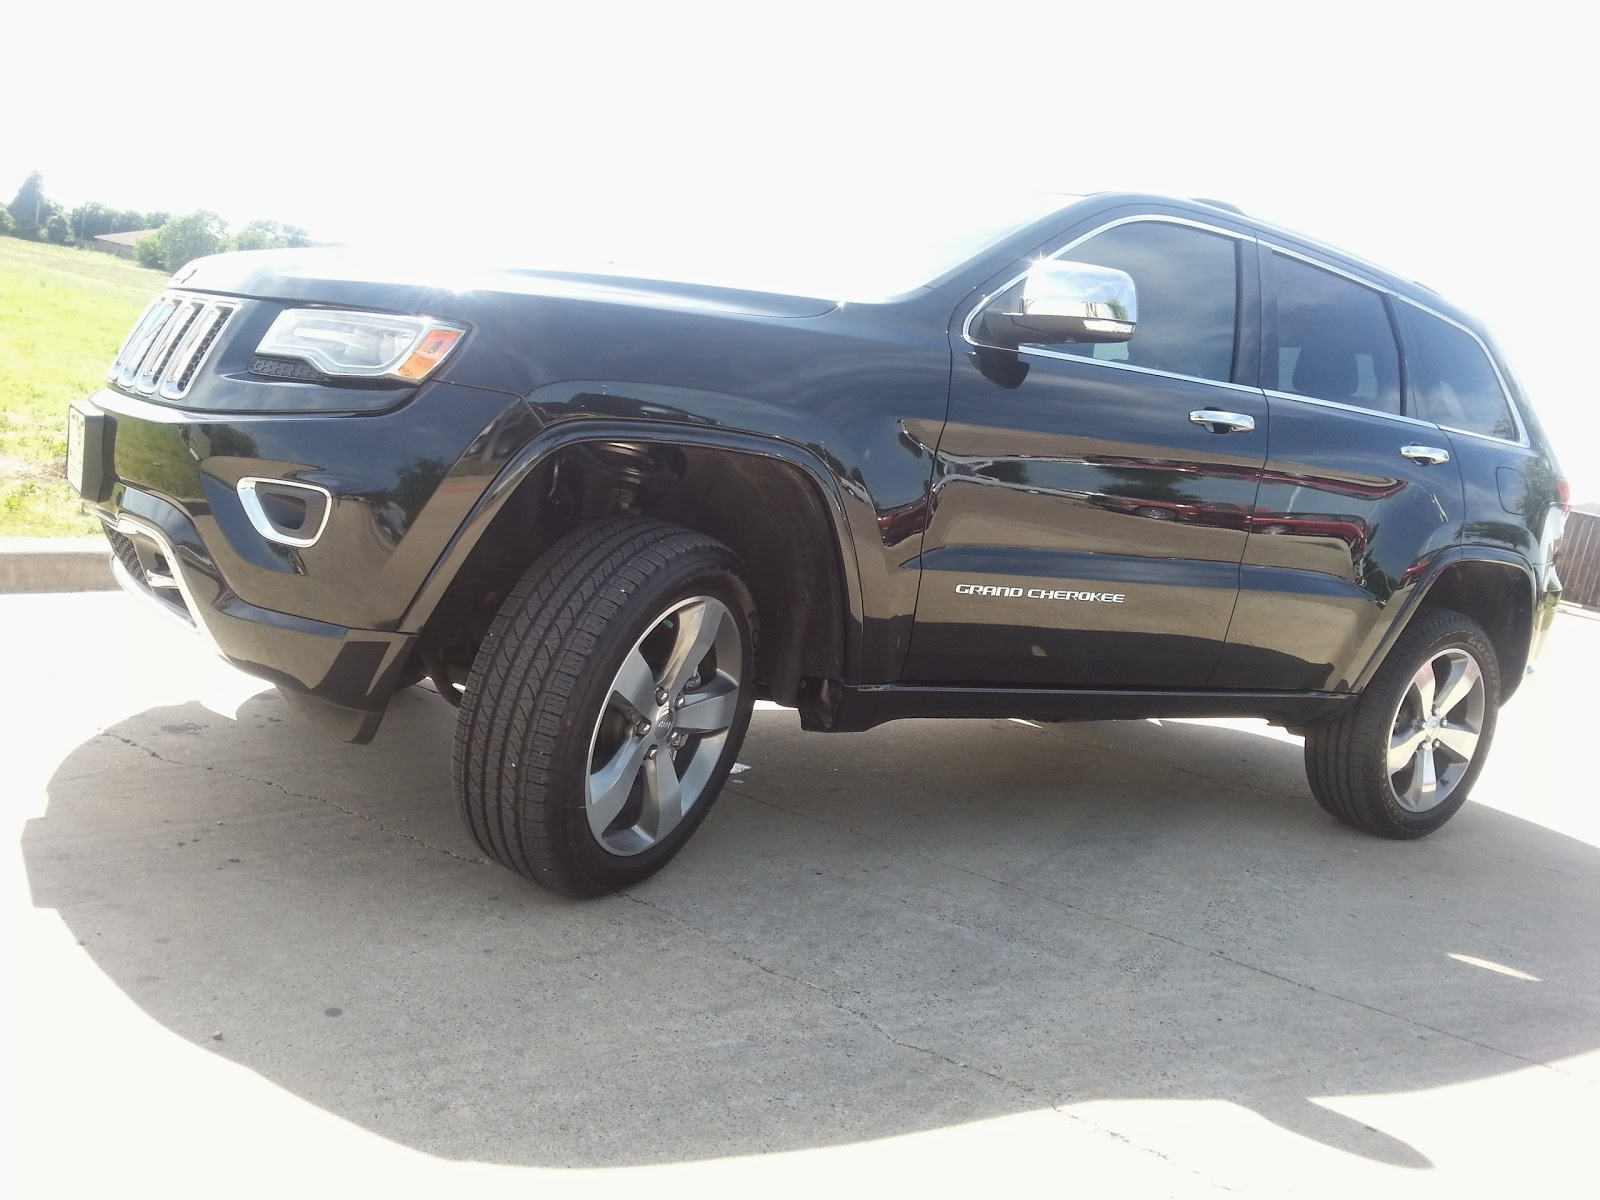 tdy sales 817 243 9840 for sale 5000 off new 2014 4wd grand cherokee overland edition black on. Black Bedroom Furniture Sets. Home Design Ideas